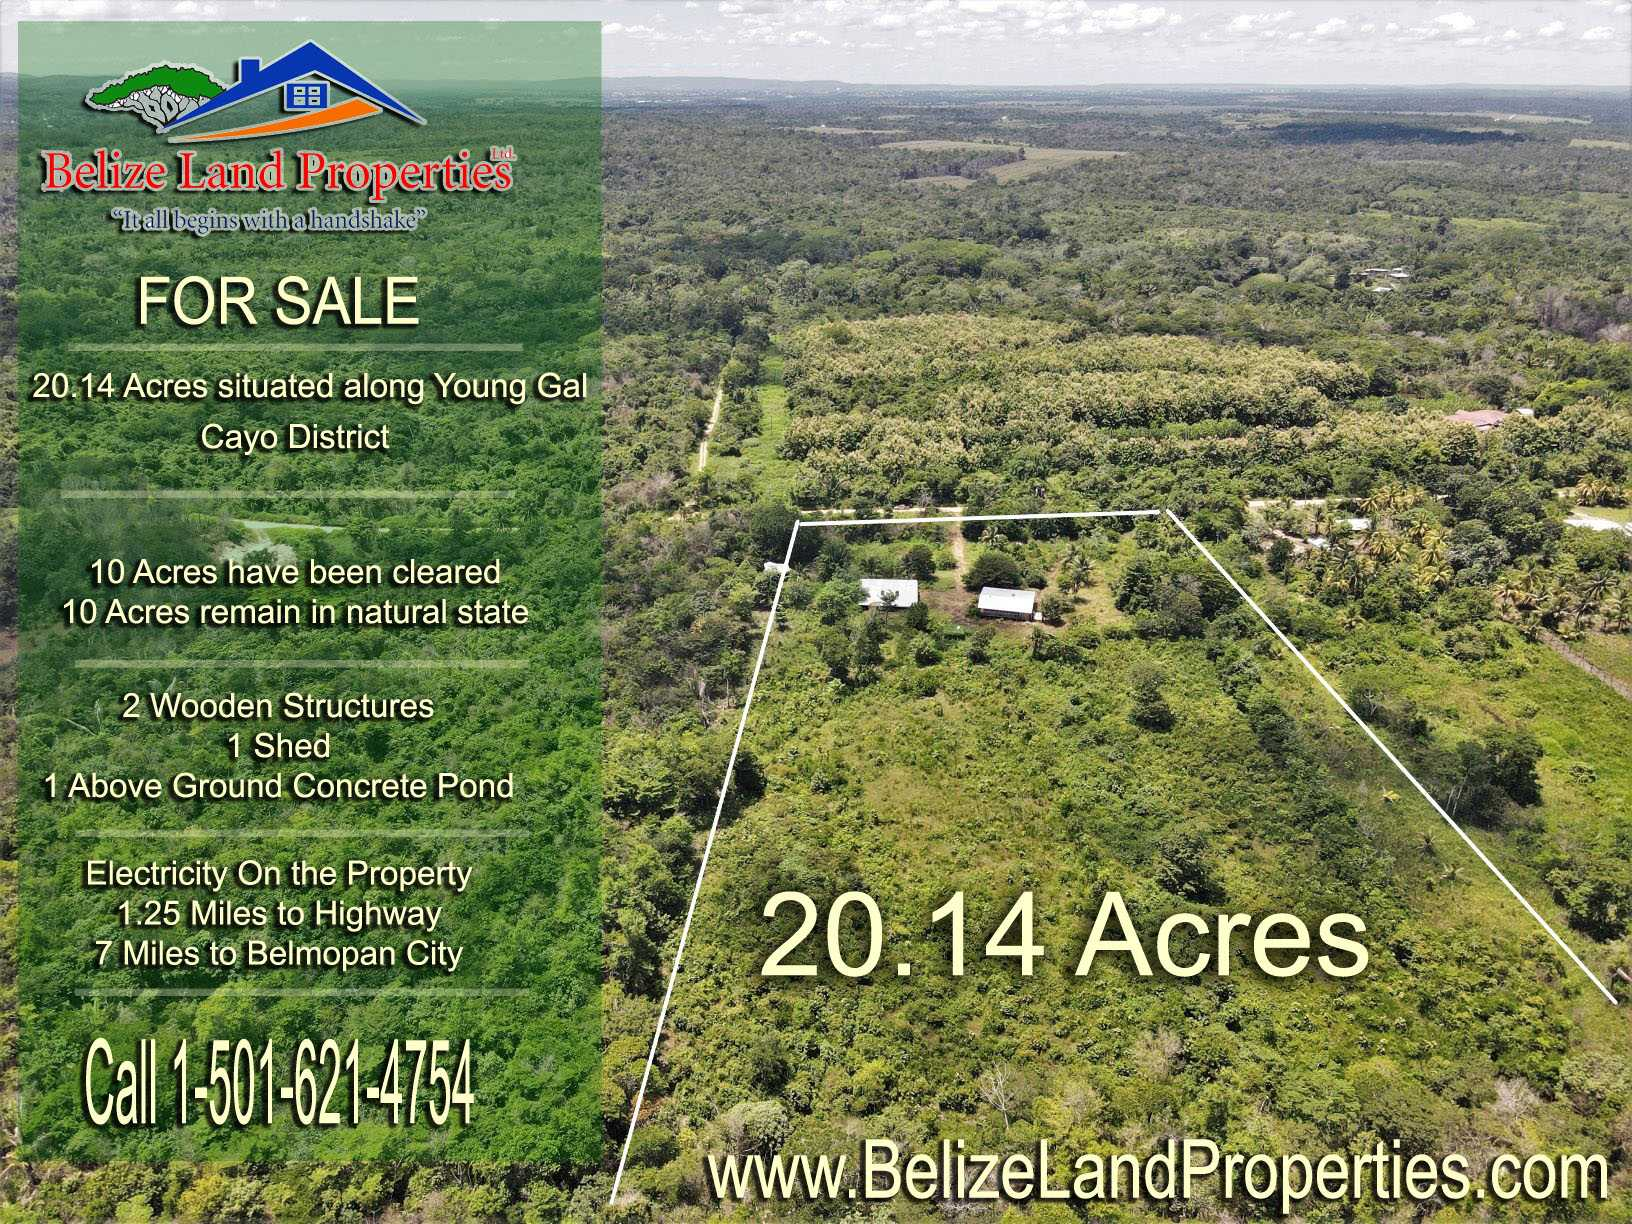 CY106: 20.14 Acres Belize Real Estate For Sale along Young Gal Road, Cayo District! Land in Cayo for Sale in Belize! Farmland for sale in Belize!